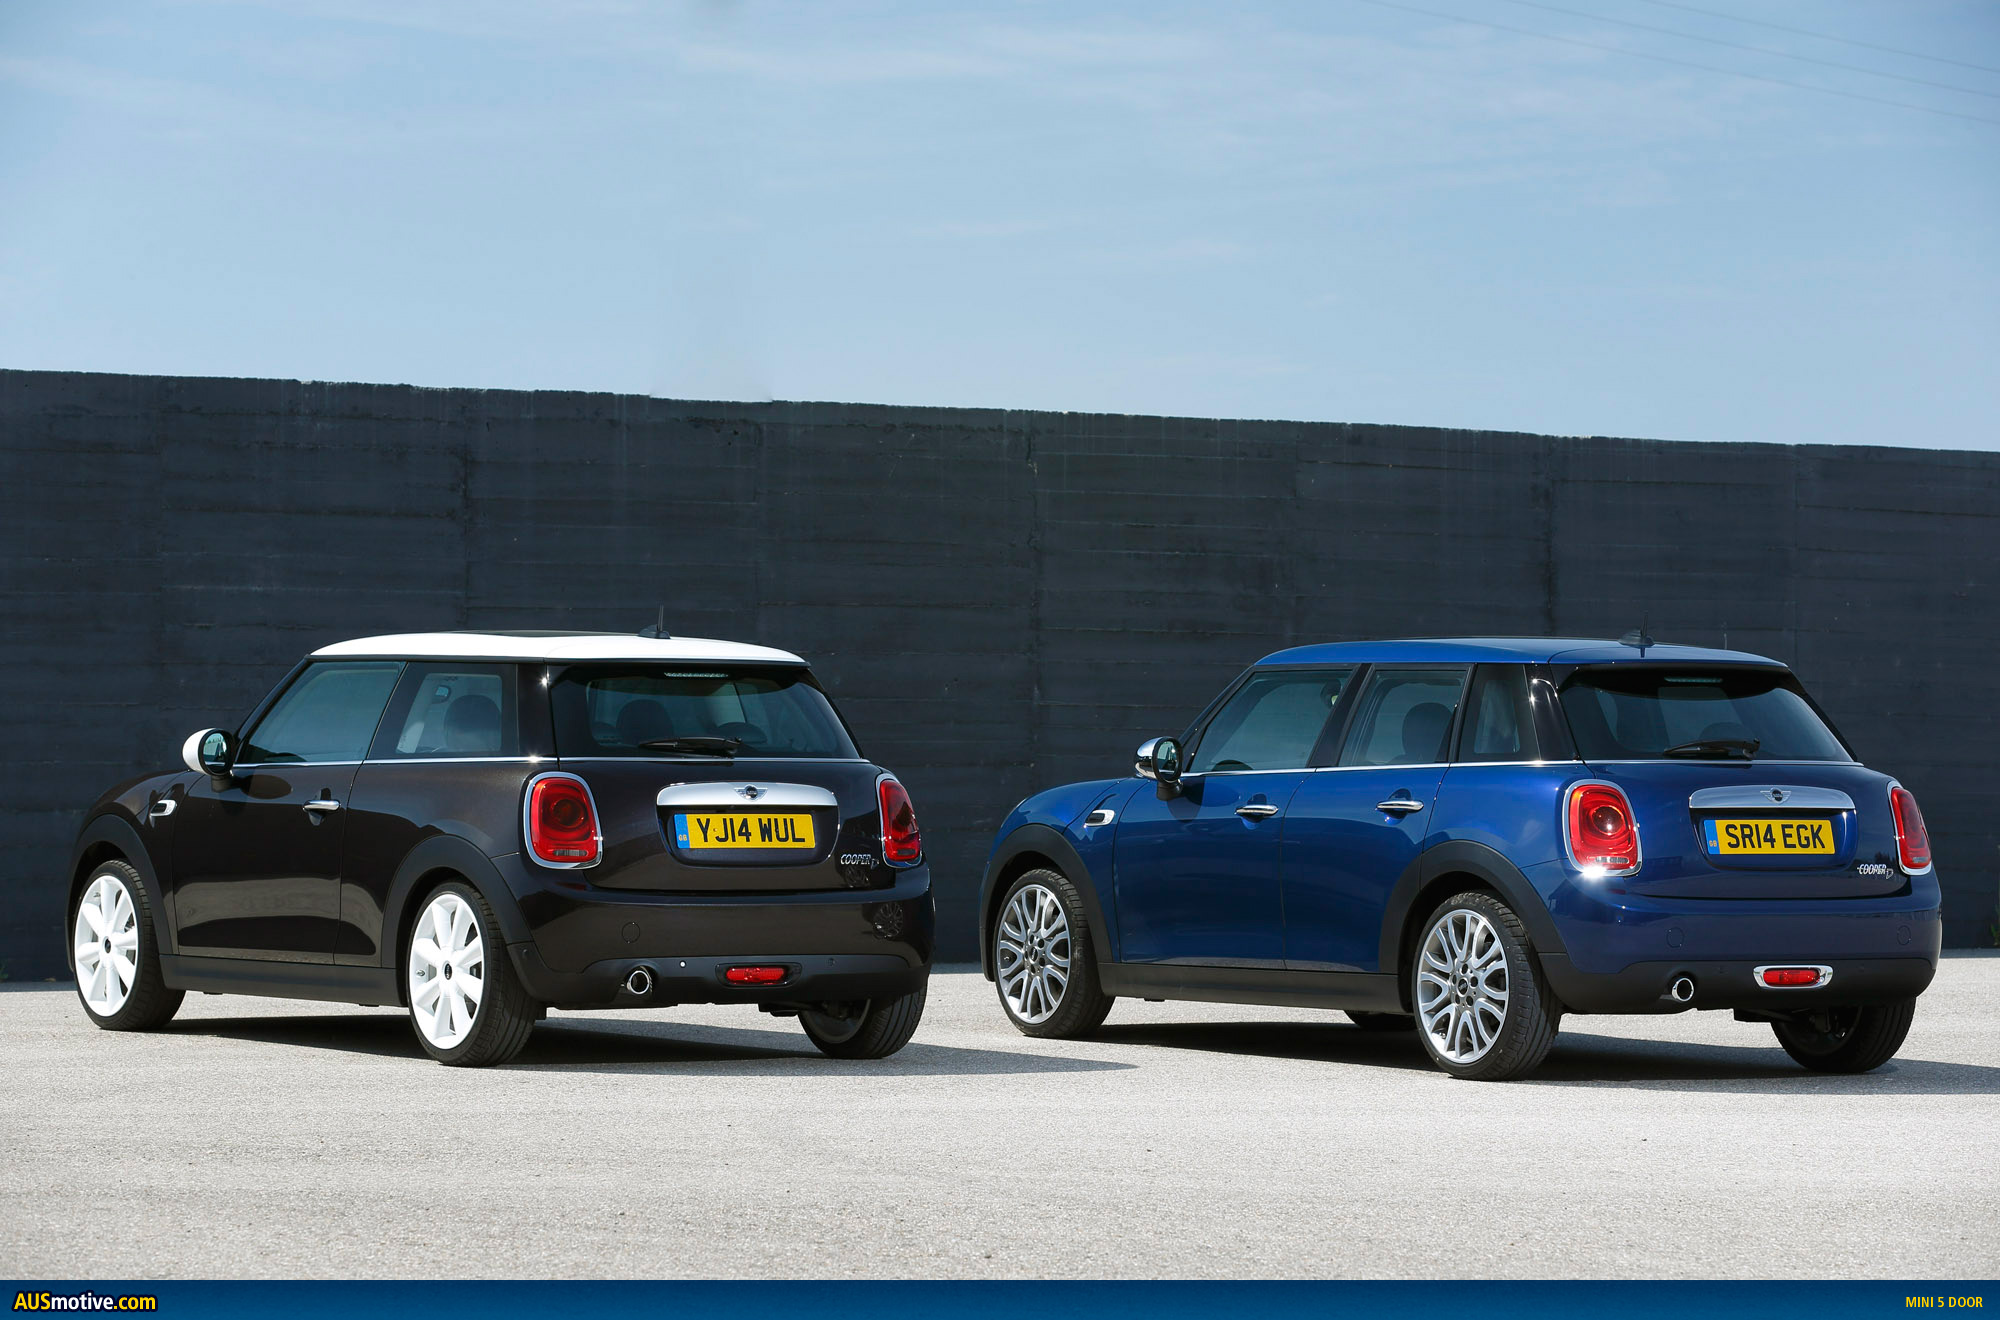 Le Meilleur Ausmotive Com » Mini 5 Door Revealed Ce Mois Ci